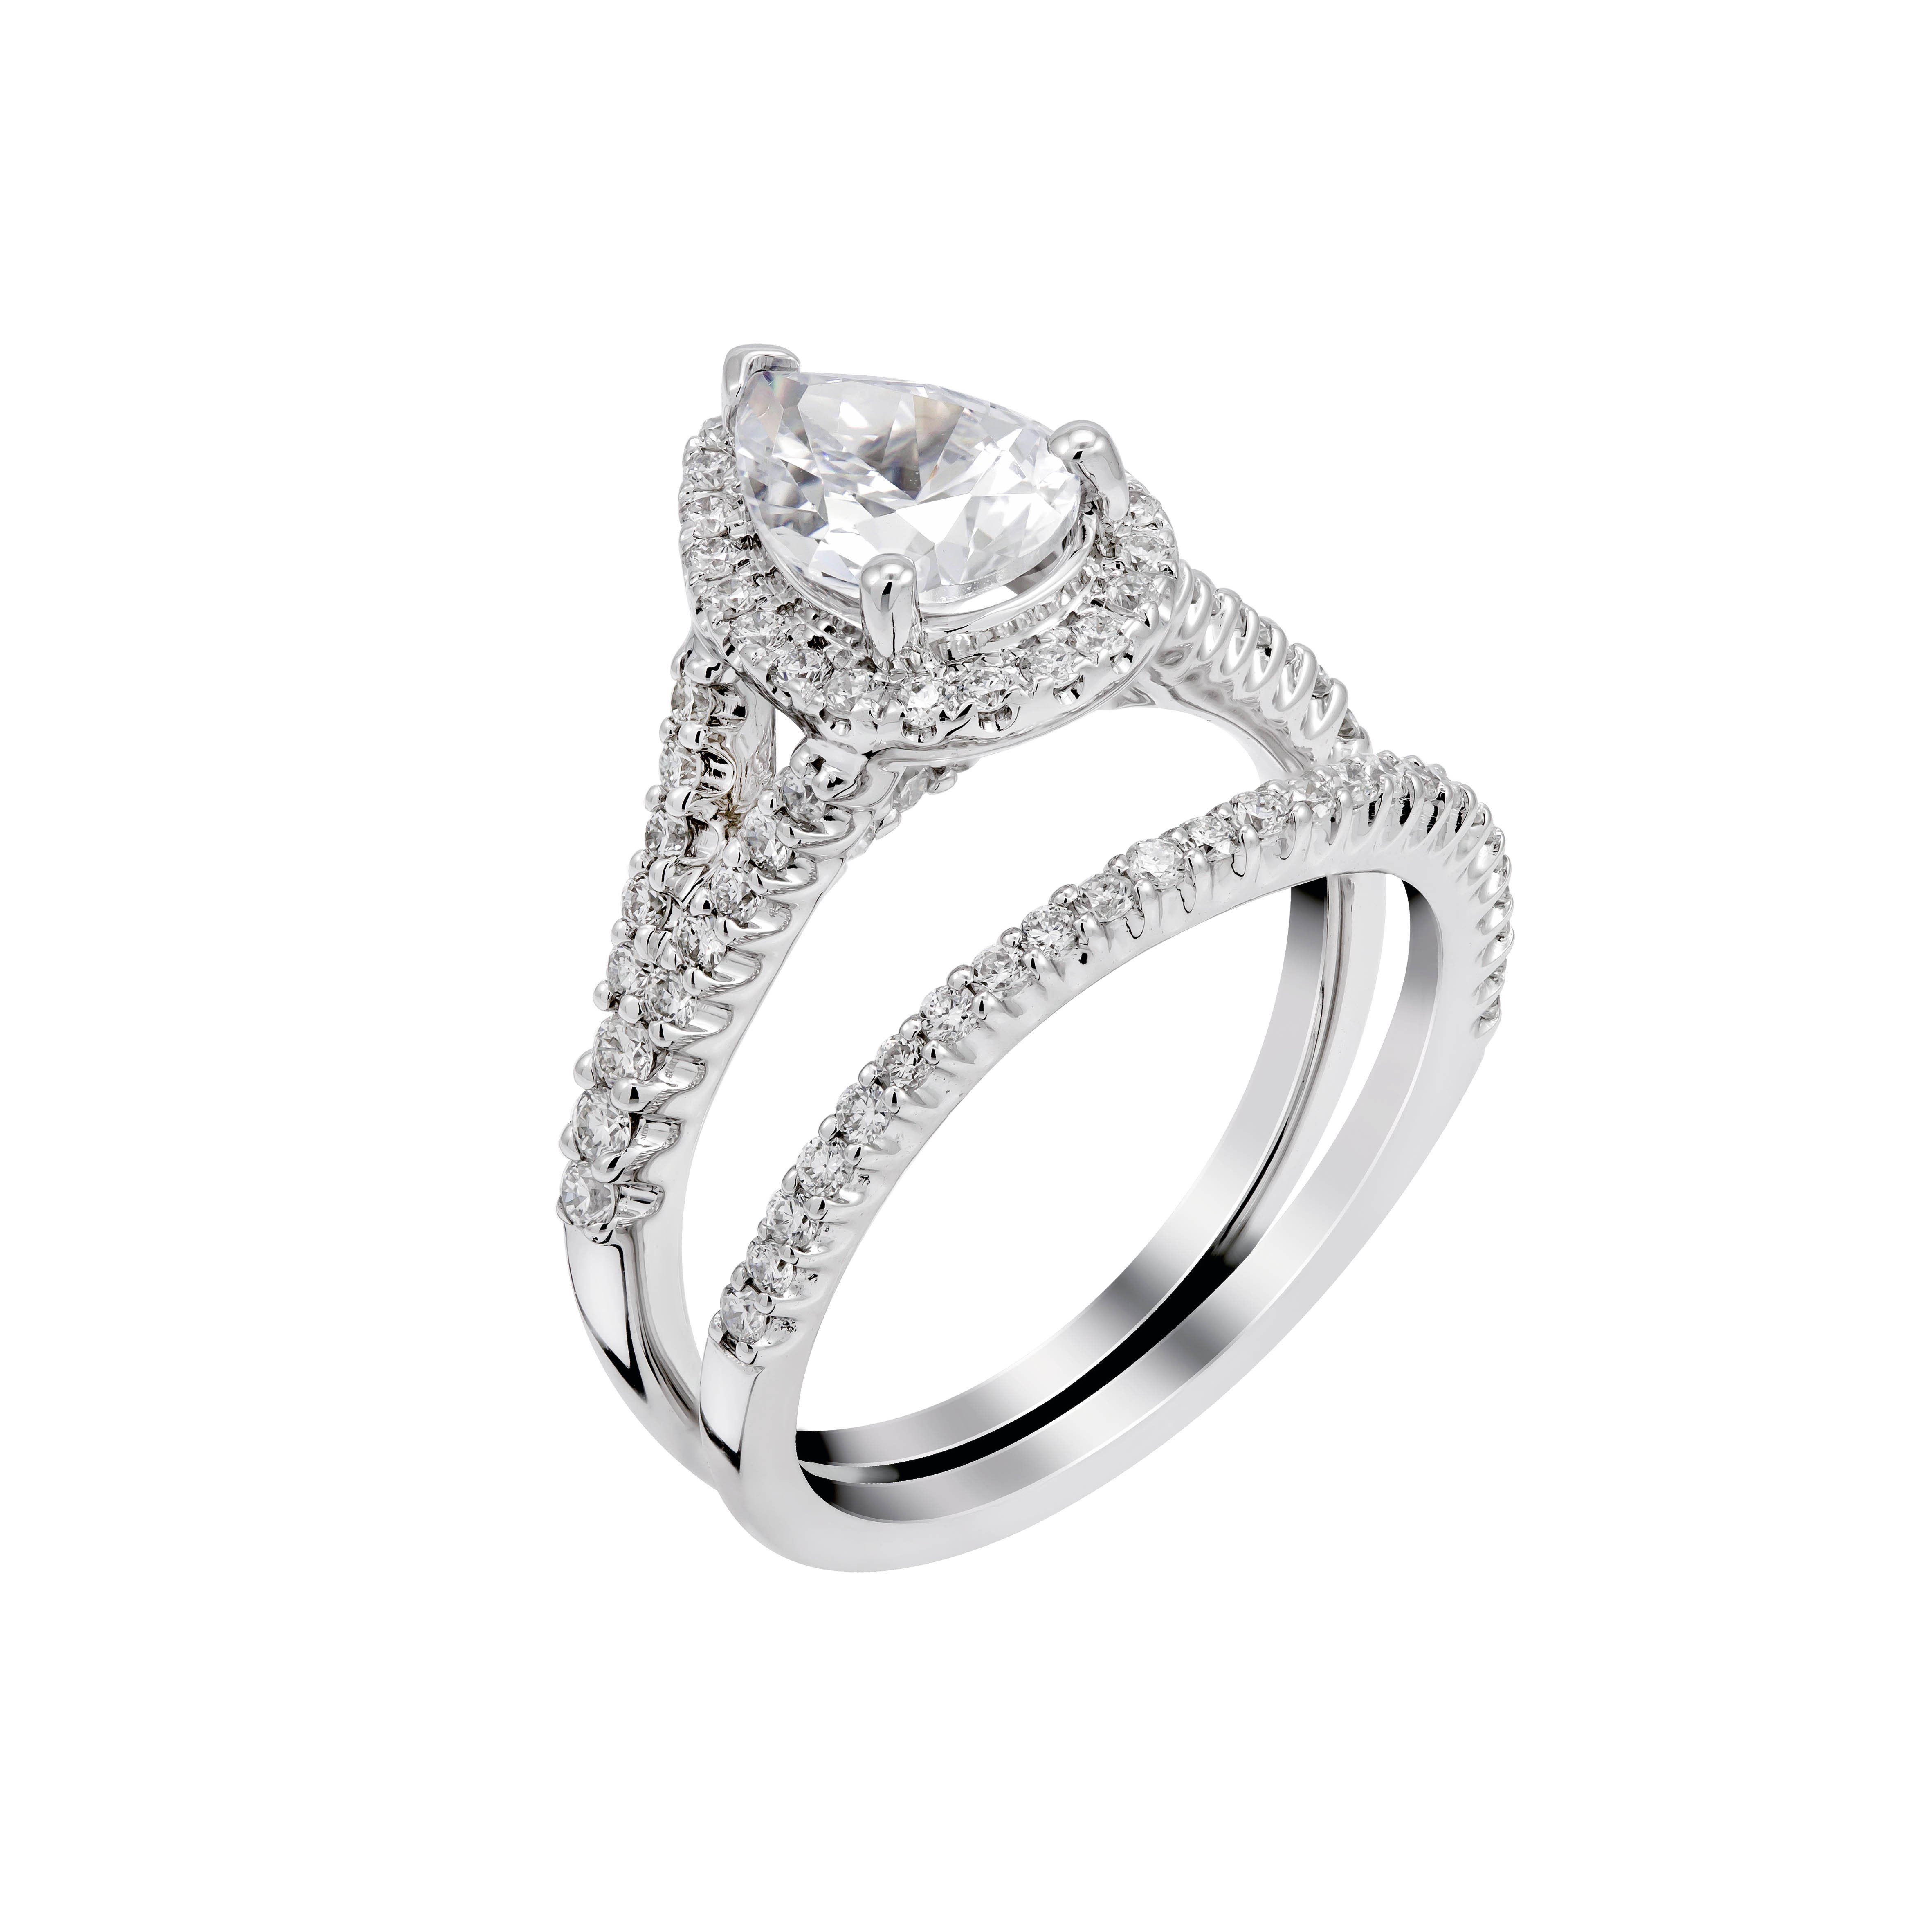 Luxury wedding ring insurance state farm wedding luxury wedding ring insurance state farm junglespirit Image collections